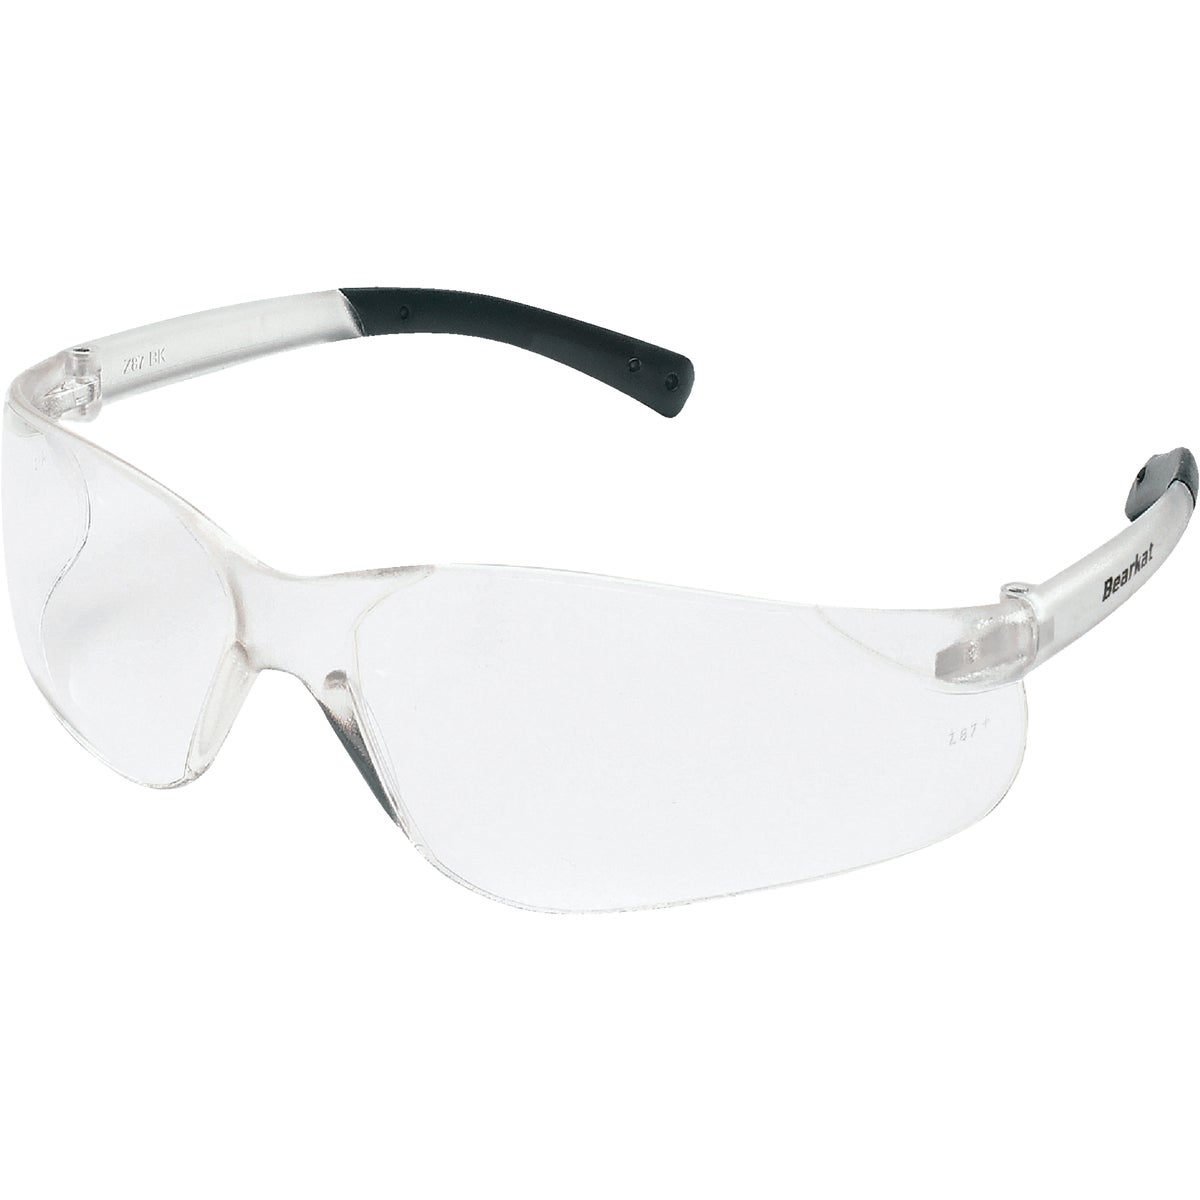 2X MAG SAFETY GLASSES